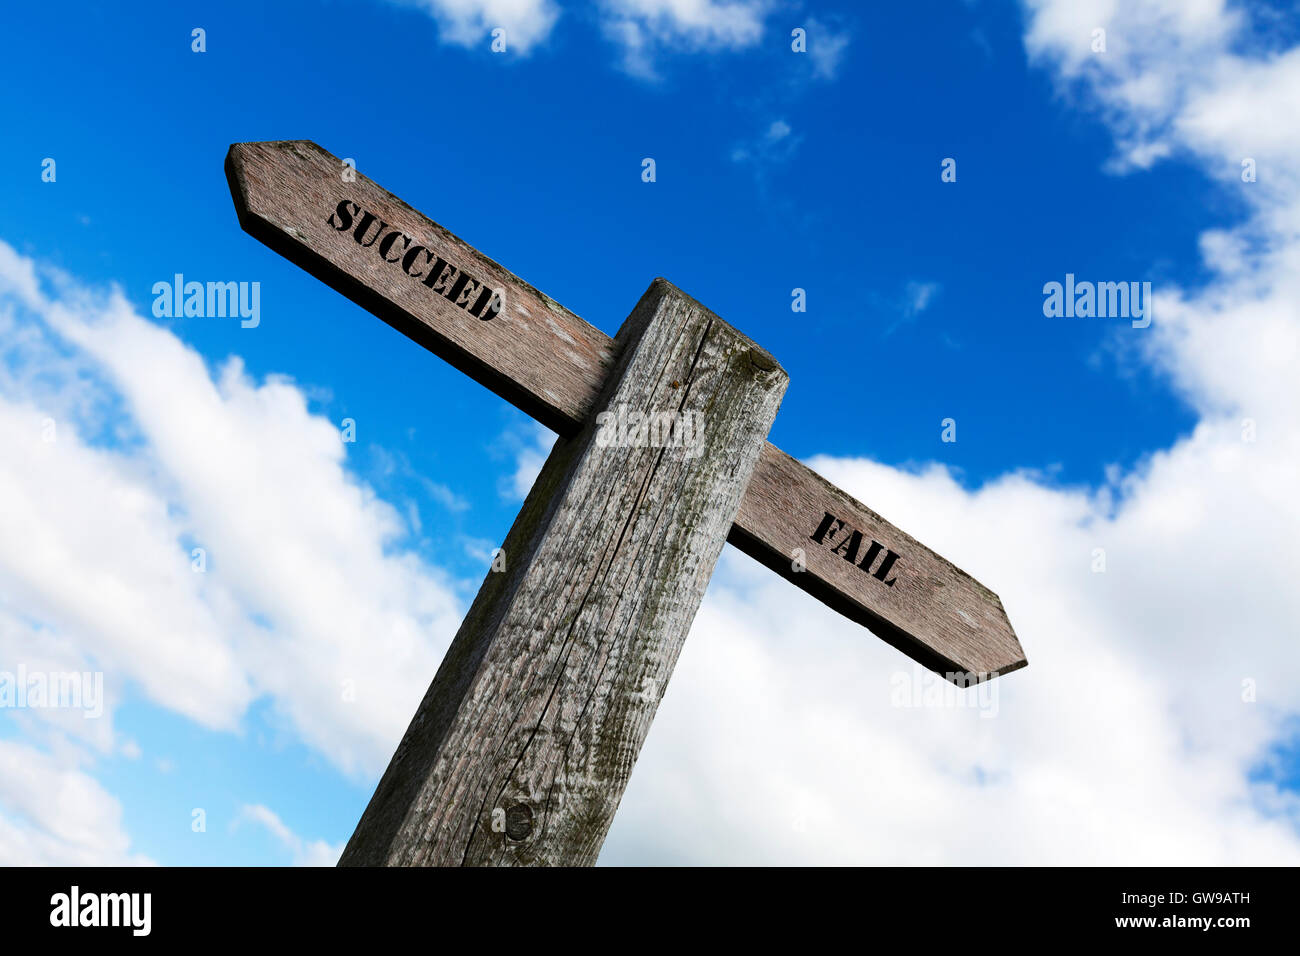 succeed fail sign words failure choice option options choose way in life antonyms antonym written direction directions - Stock Image